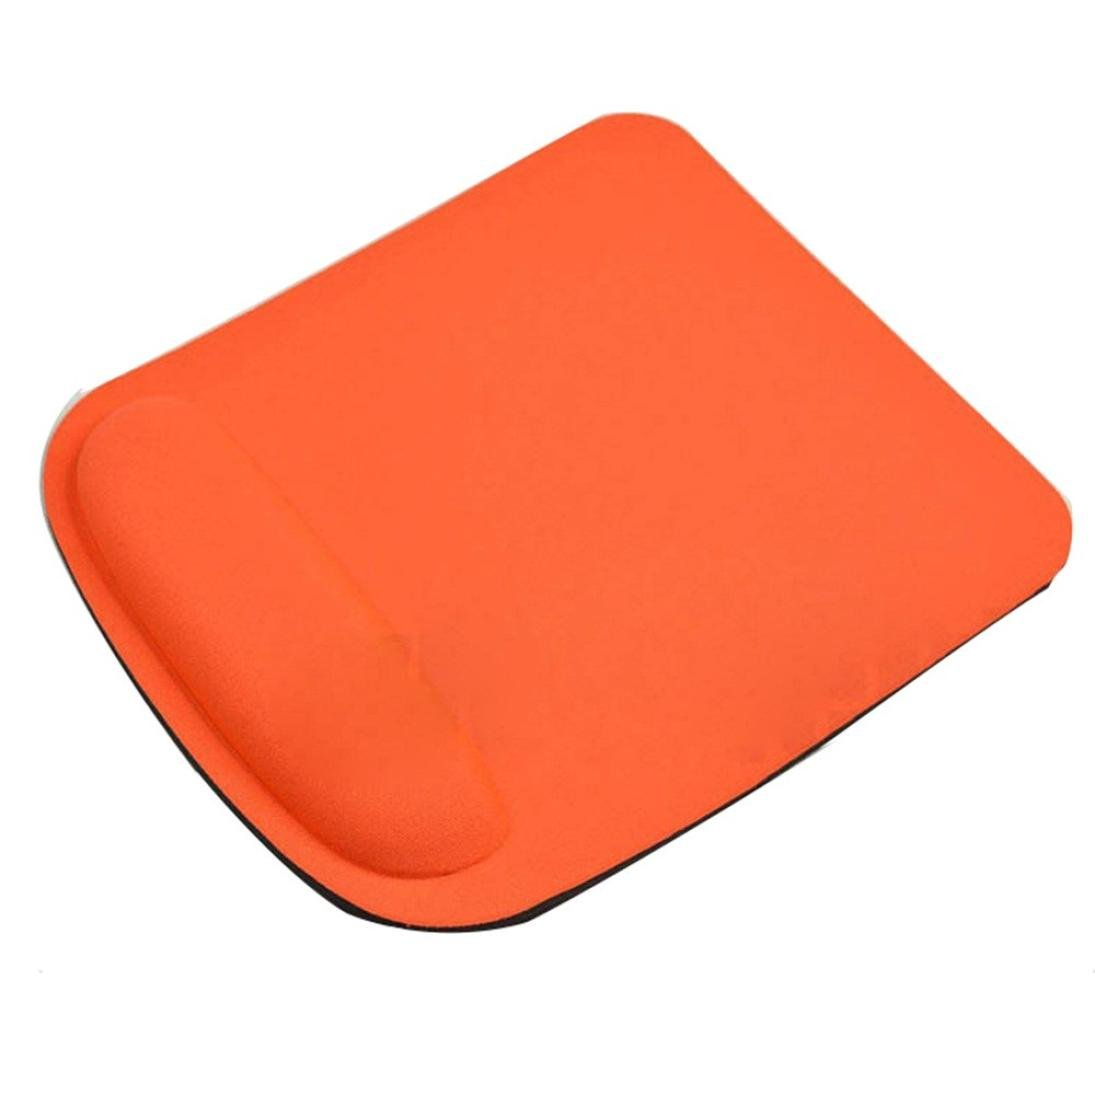 Coohole Gel Wrist Rest Support Game Mouse Mat Anti-slip Pad for Computer PC Laptop (Orange 1, A)